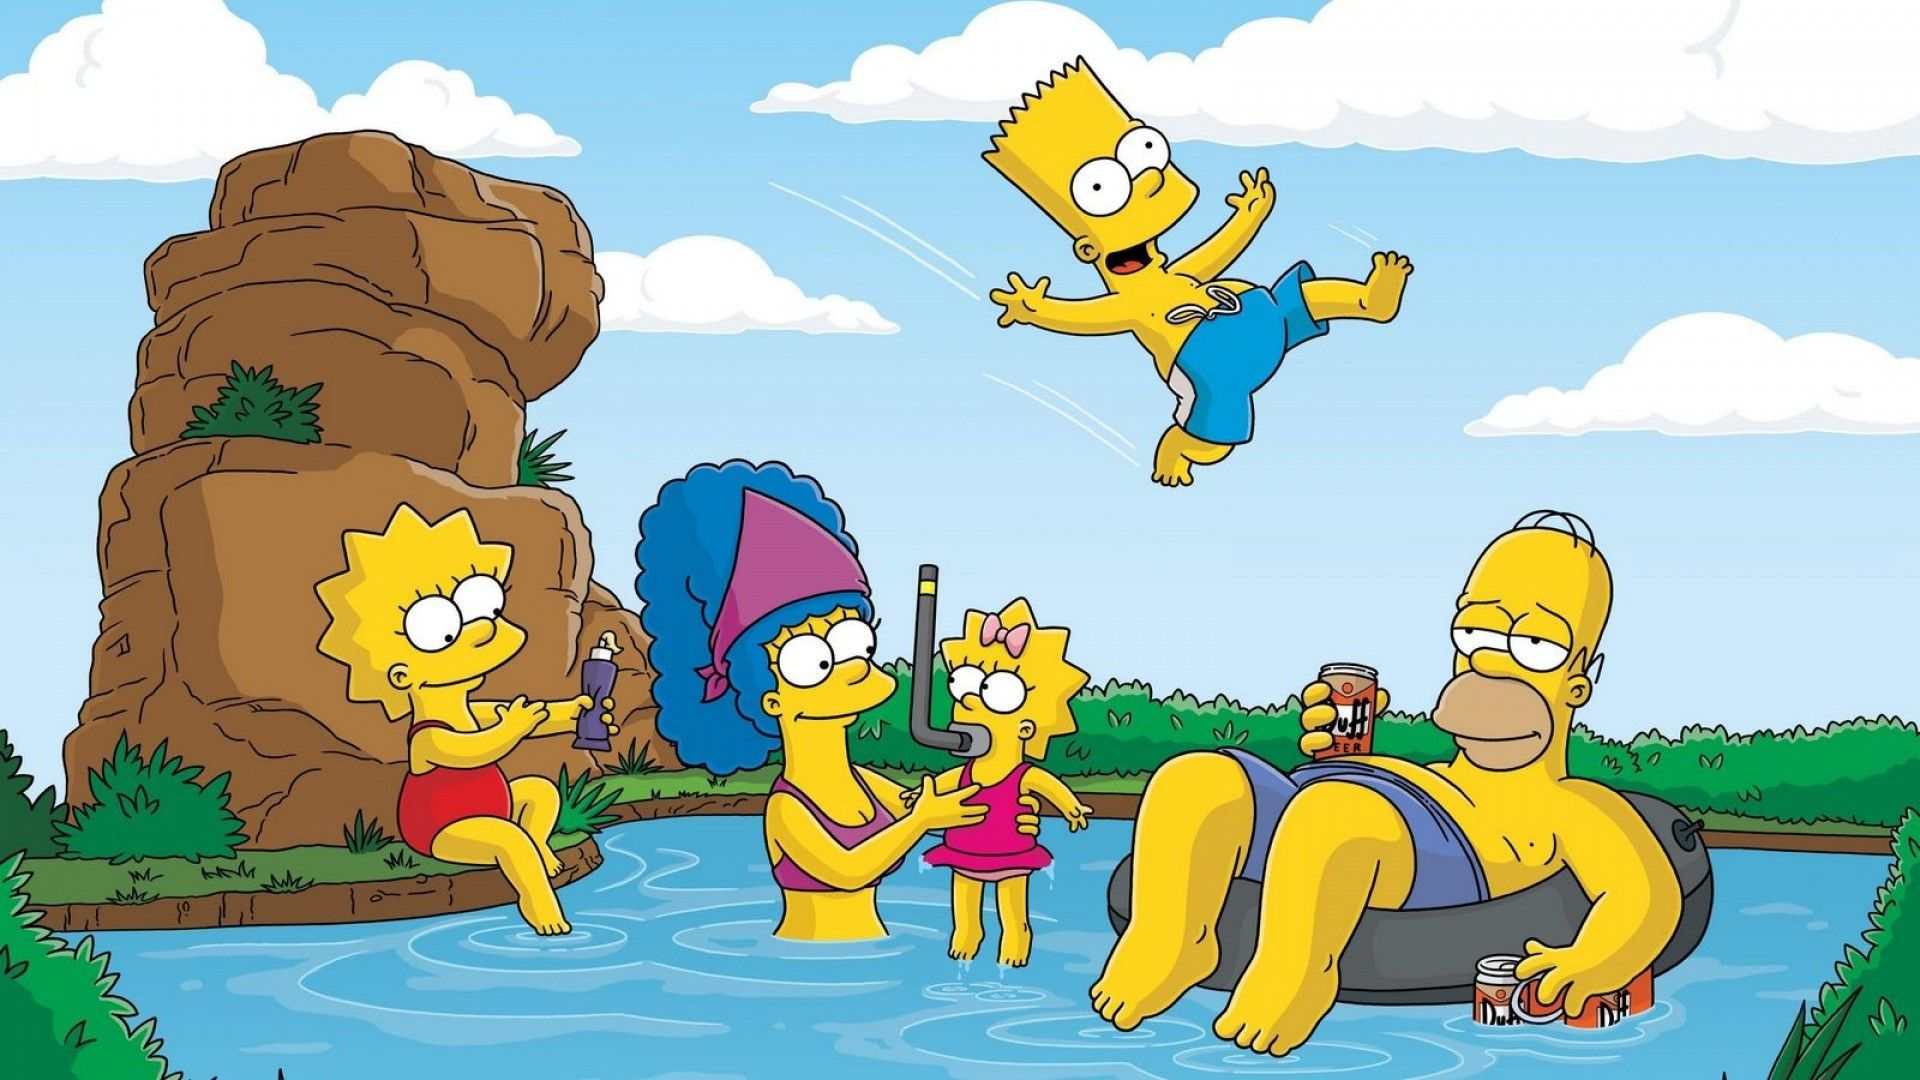 Wallpaper, Ilustrasi, Gambar Kartun, Simpsons, Homer Simpson, Bart Simpson, Marg